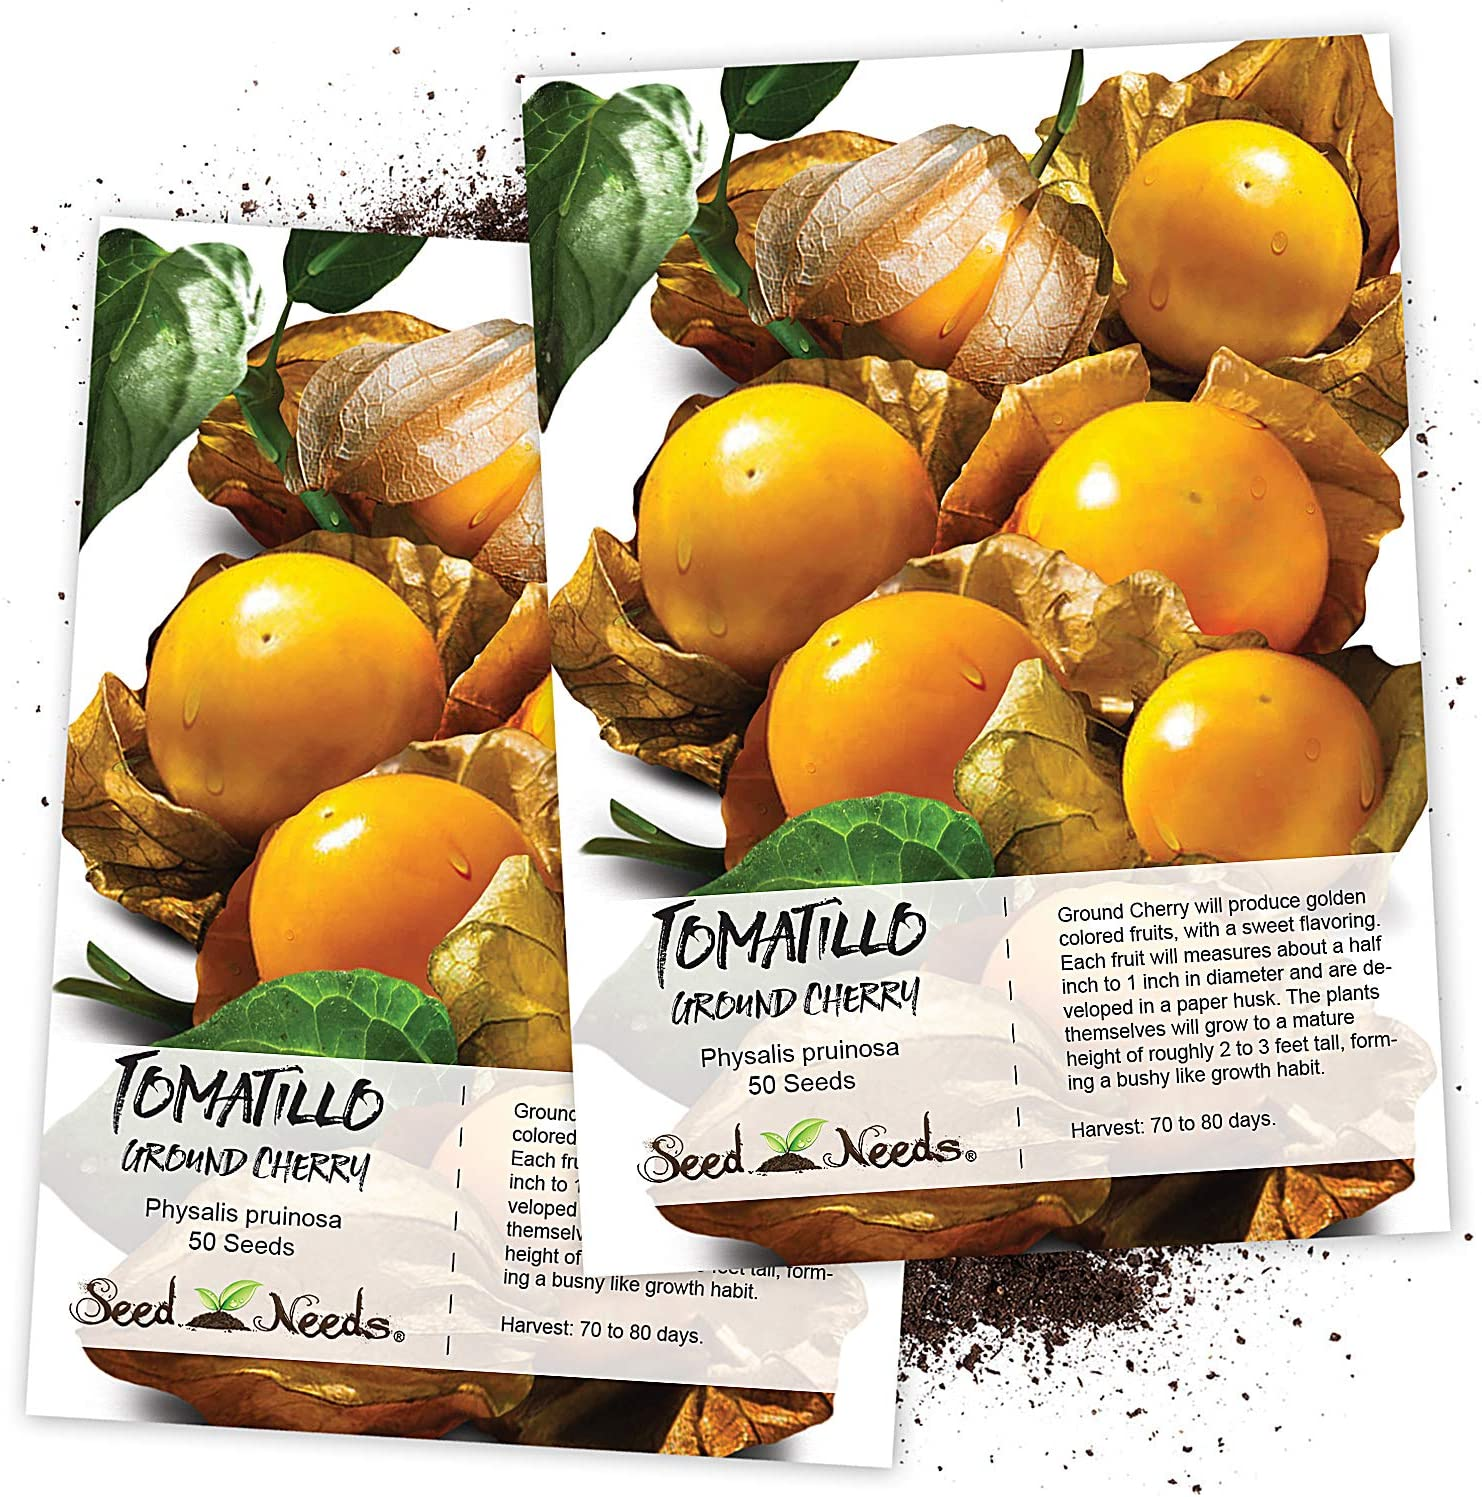 Seed Needs, Ground Cherry Tomatillo (Physalis pruinosa) Twin Pack of 50 Seeds Each Non-GMO